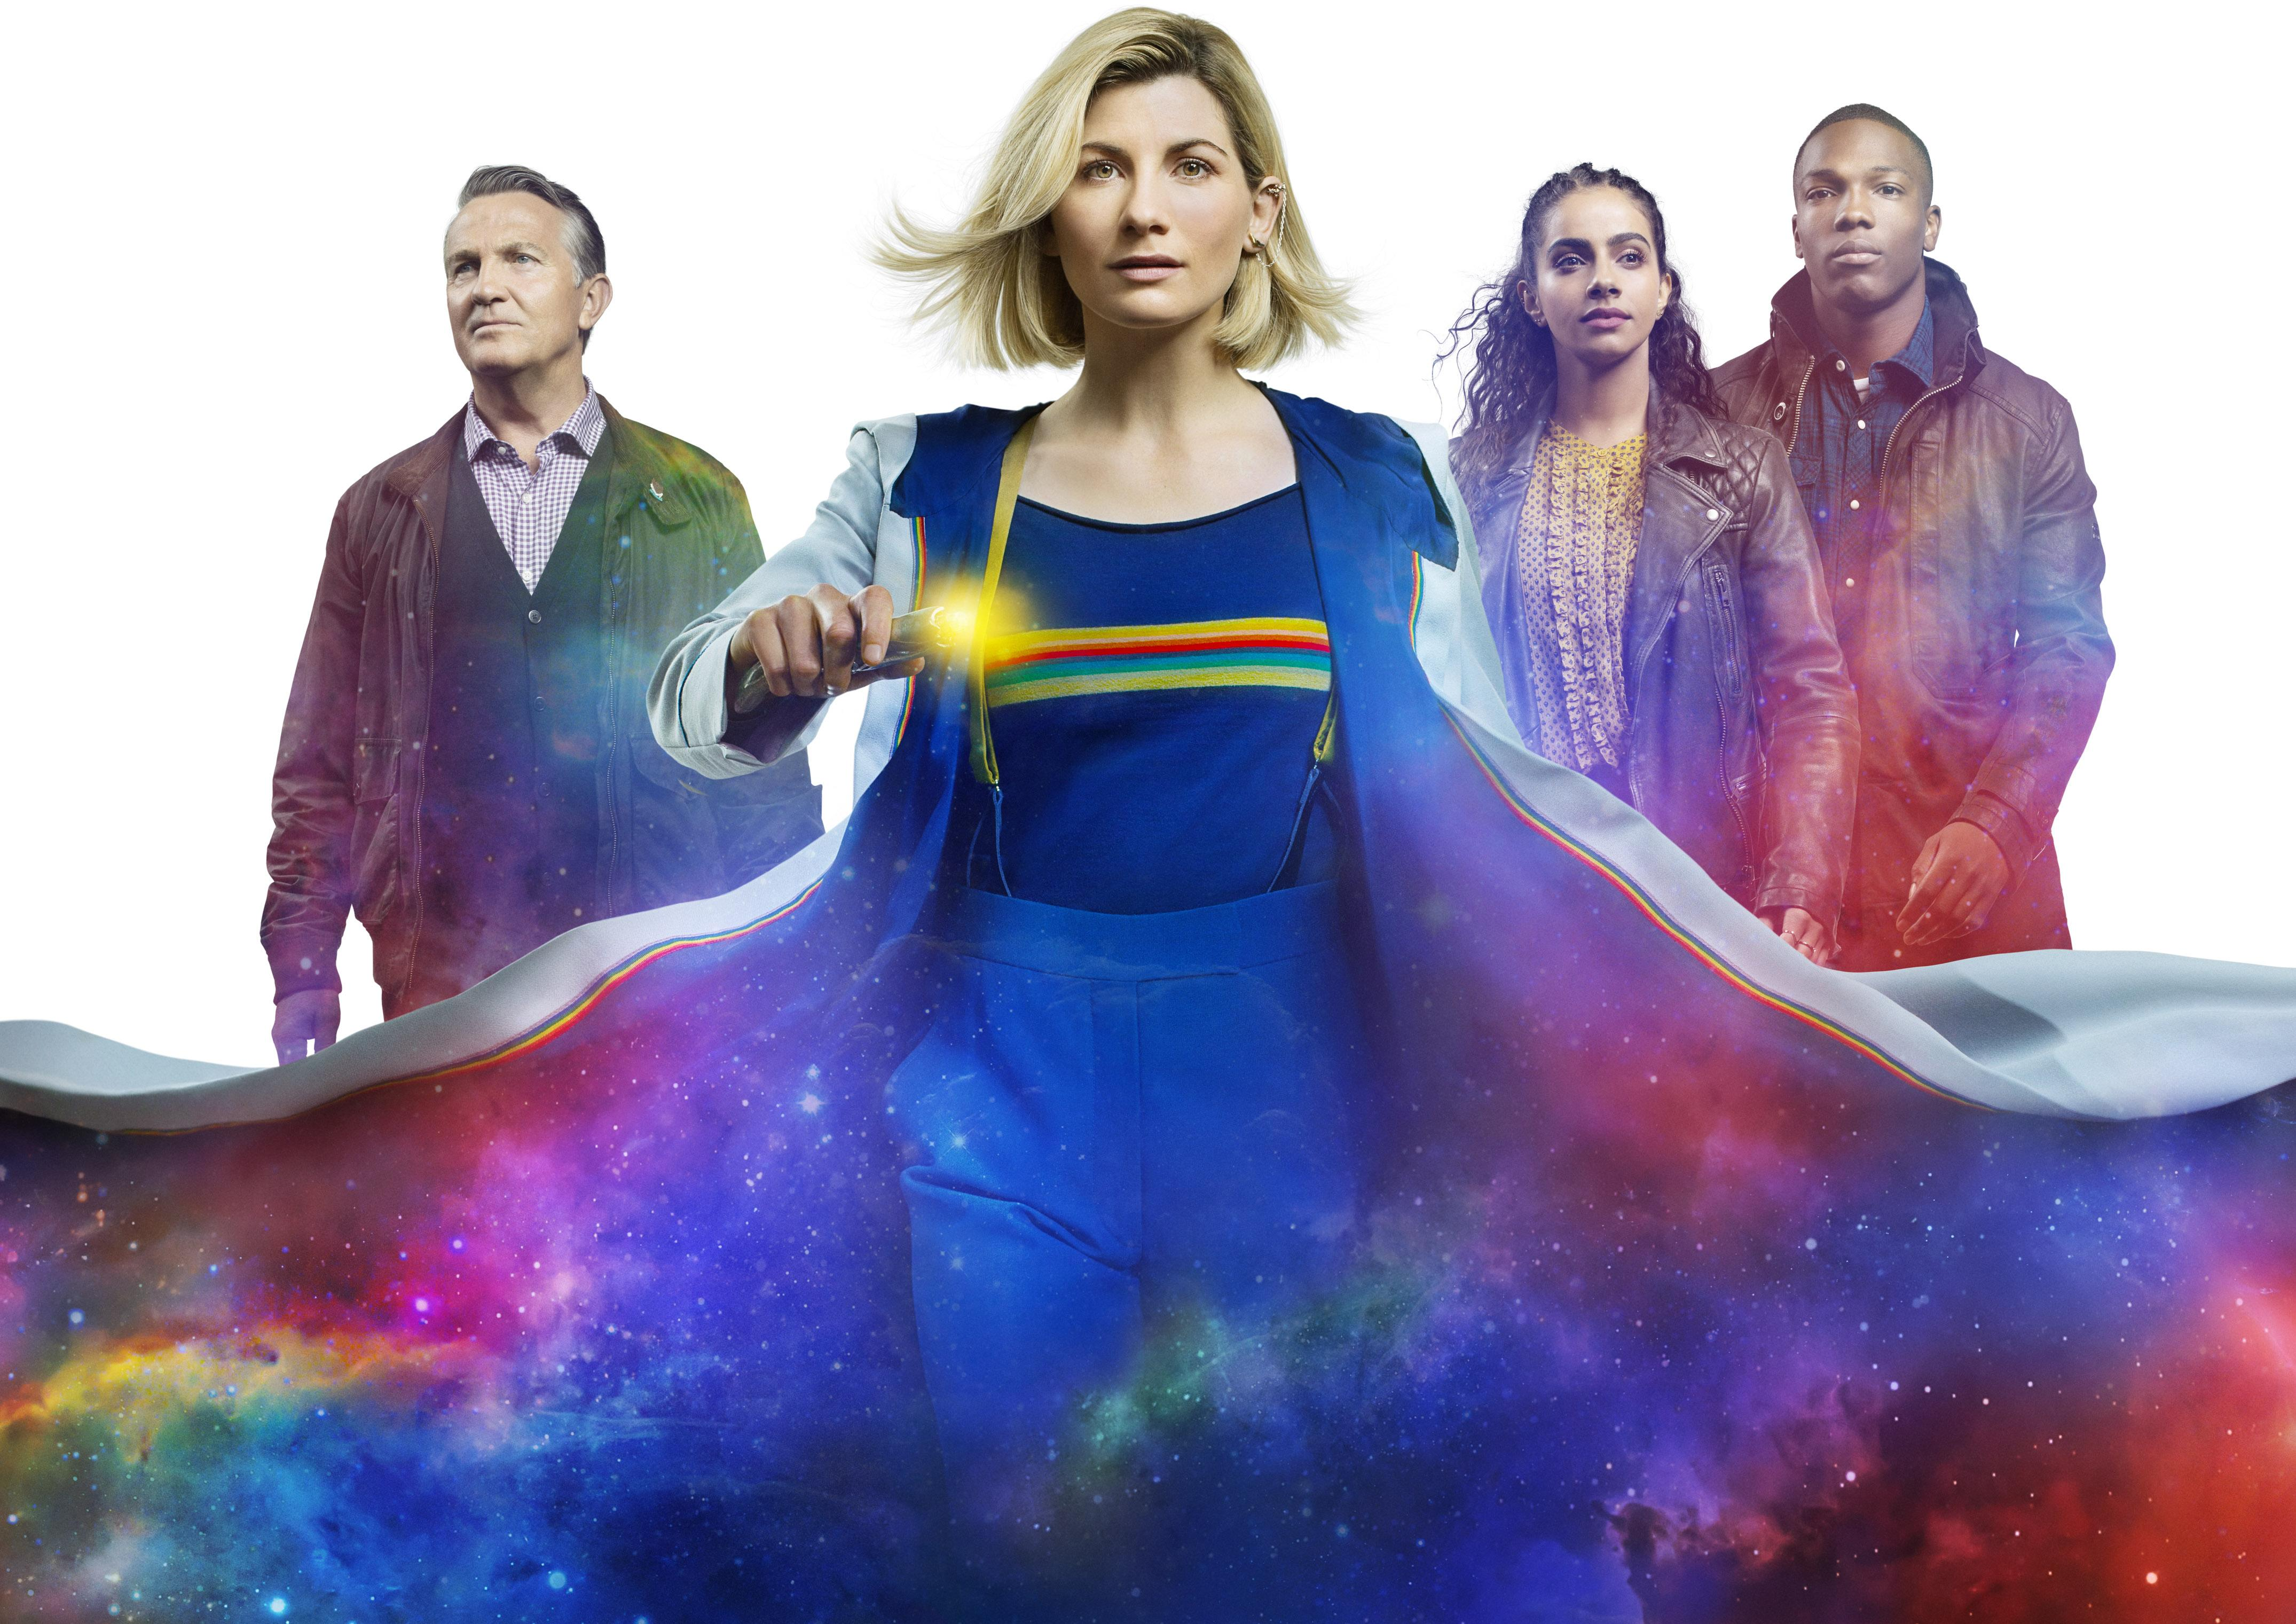 Graham (BRADLEY WALSH), The Doctor (JODIE WHITTAKER), Yaz (MANDIP GILL), Ryan (TOSIN COLE) - (BBC Studios/Alan Clarke)